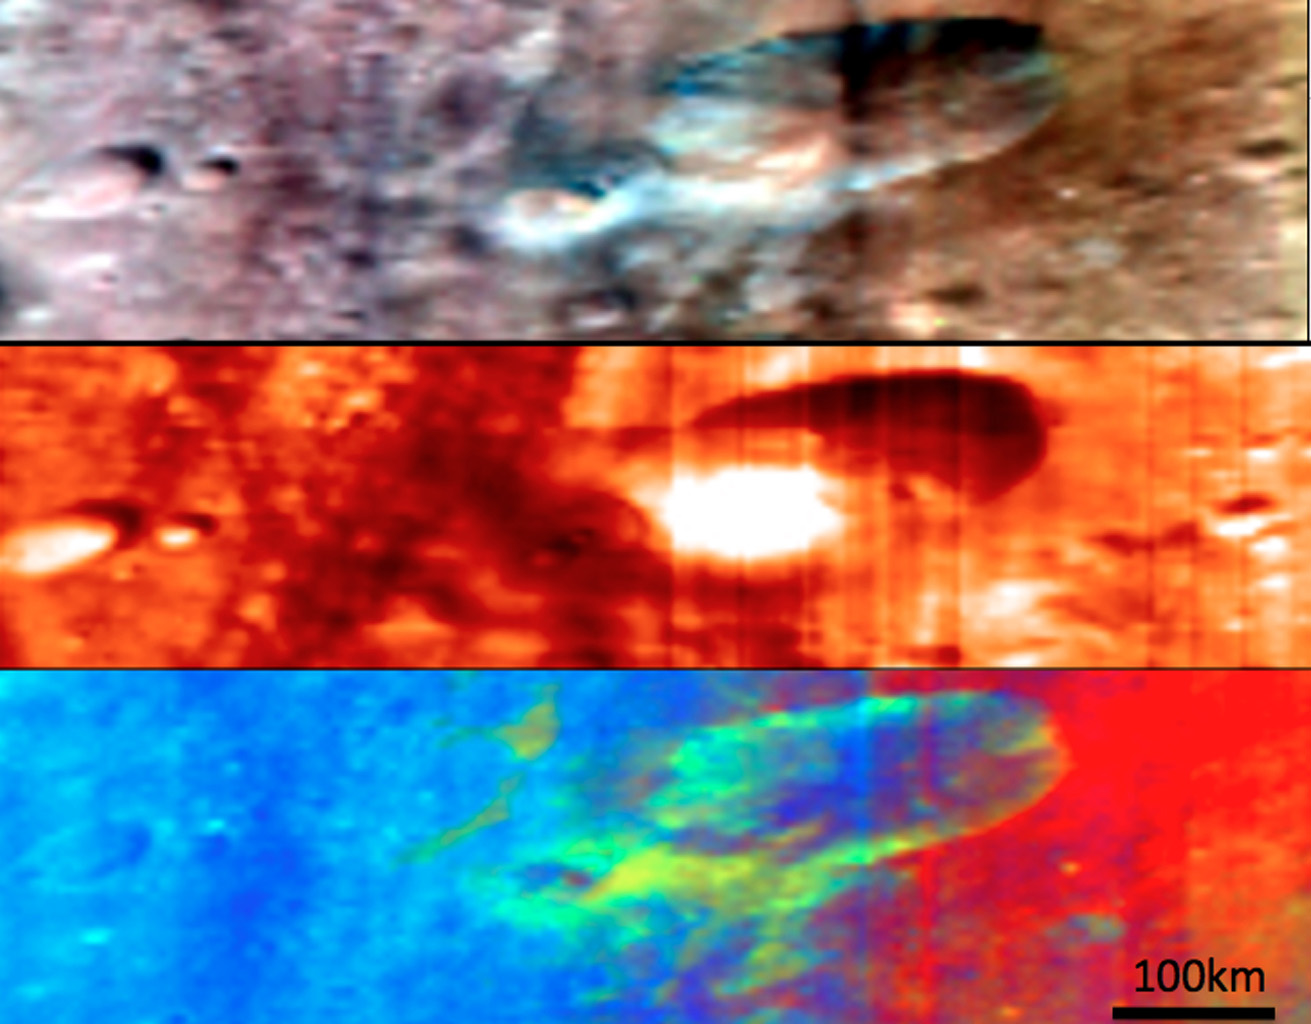 Craters and Ejecta in Visible and Infrared Wavelengths